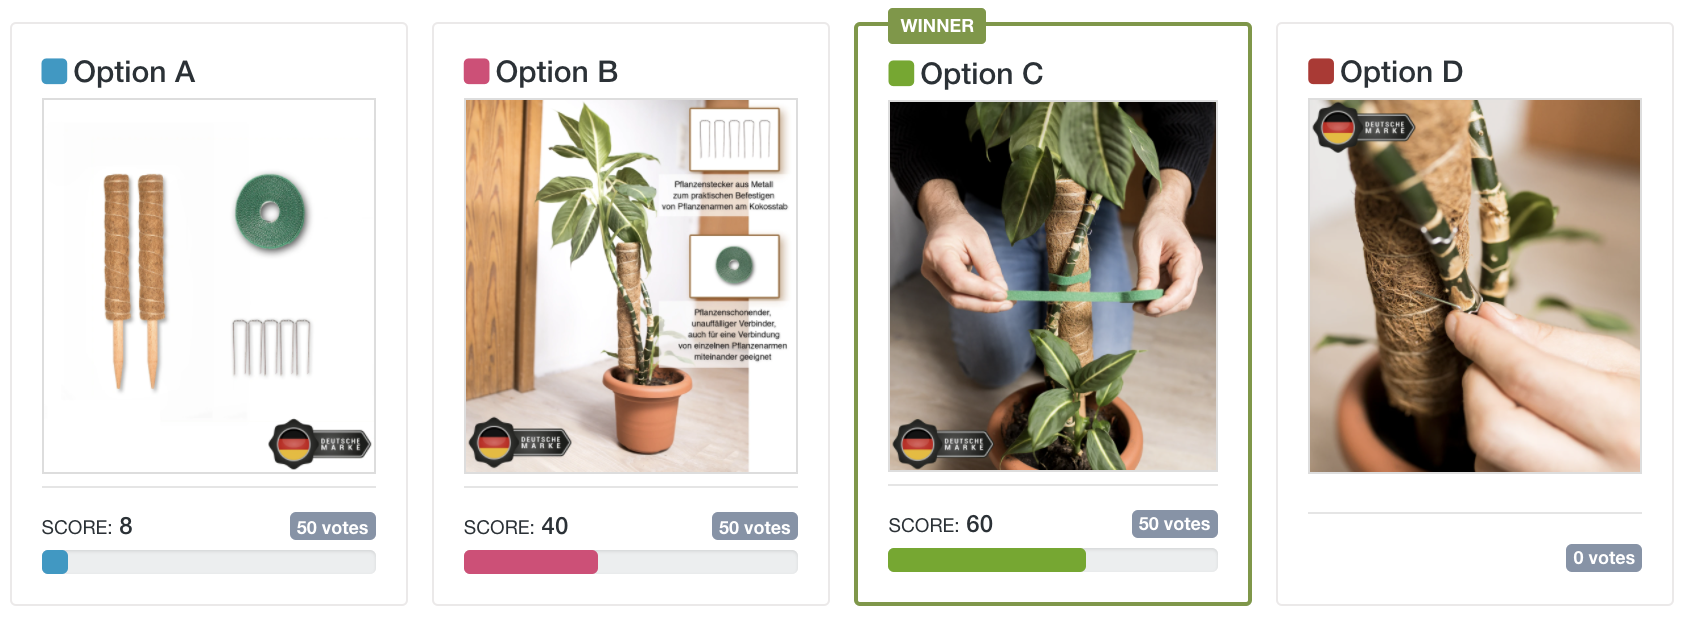 Which One Won: first set of gardening products image test options